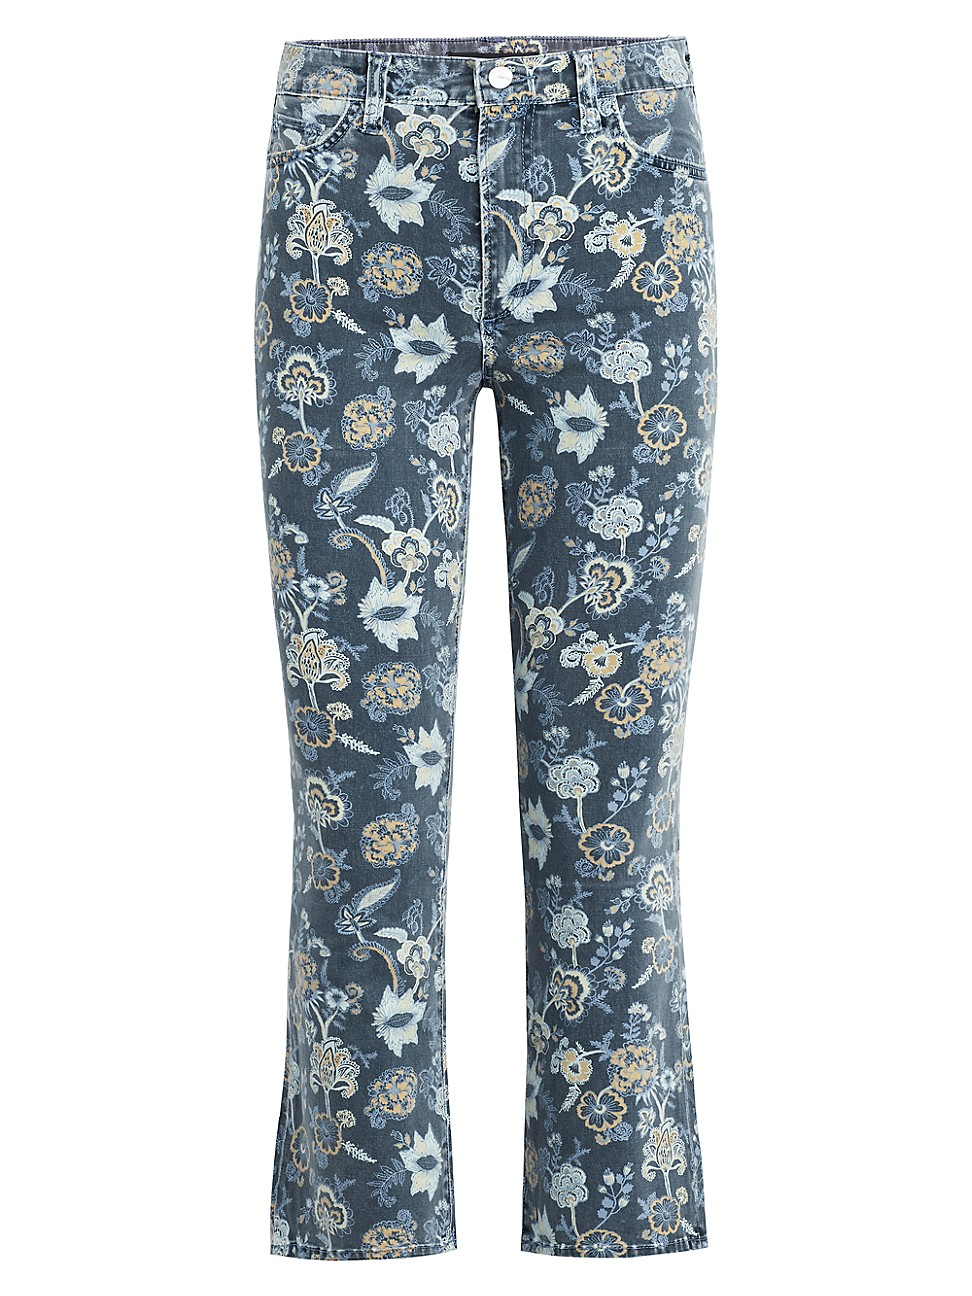 Joe's Jeans WOMEN'S CALLIE HIGH-RISE FLORAL CROPPED JEANS